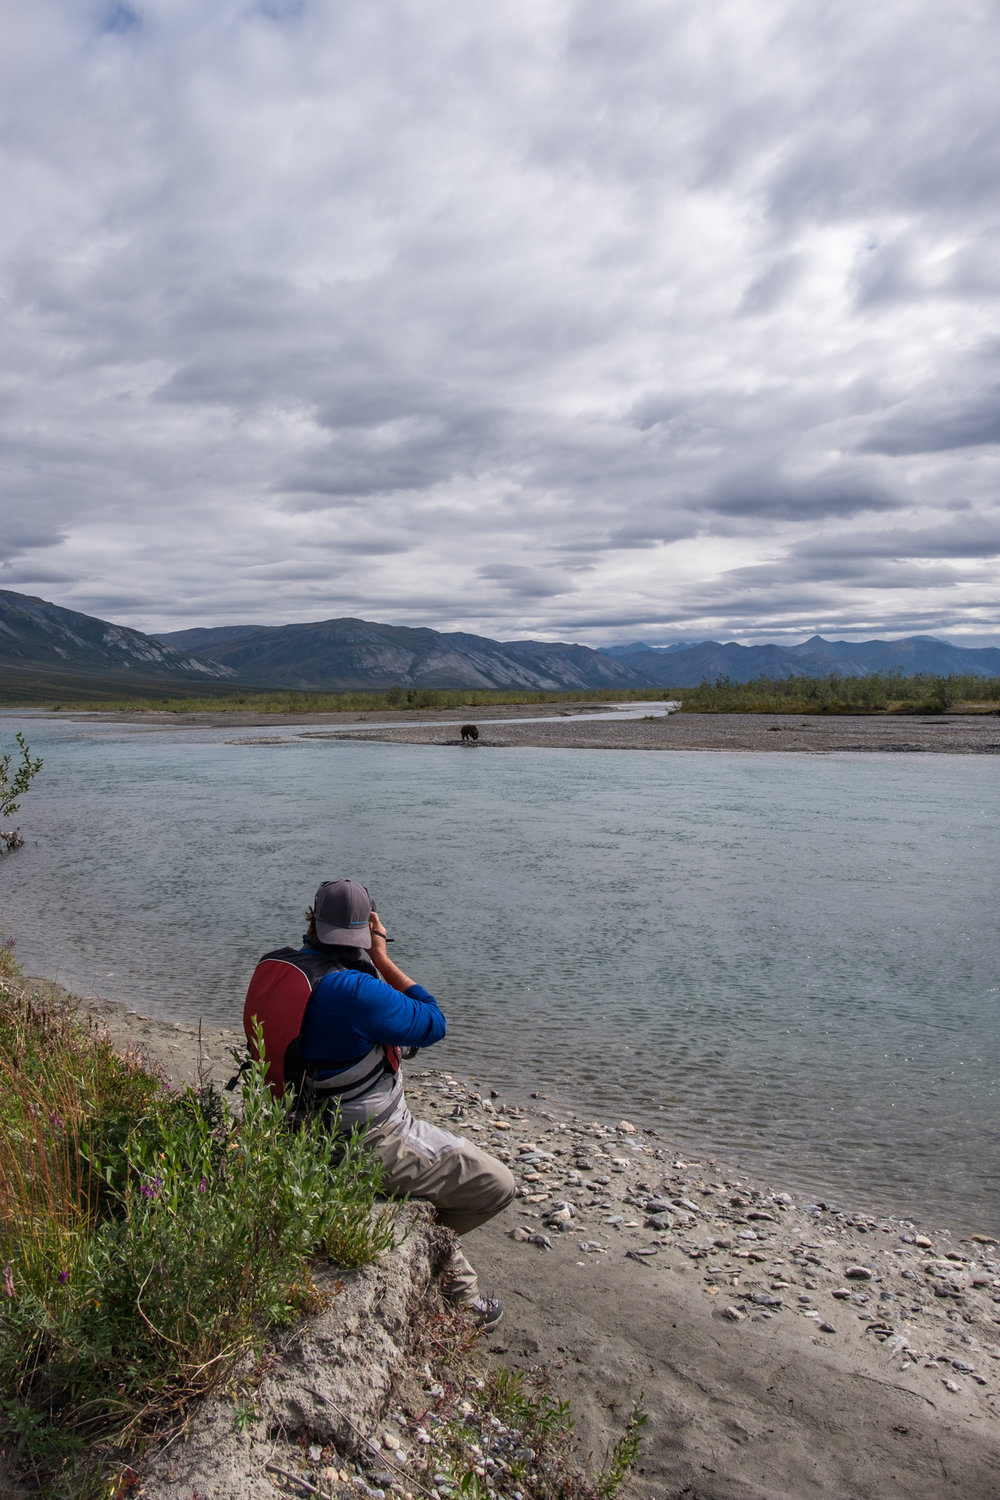 20160806-SP-Gates of the Arctic National Park-_DSF8466.jpg